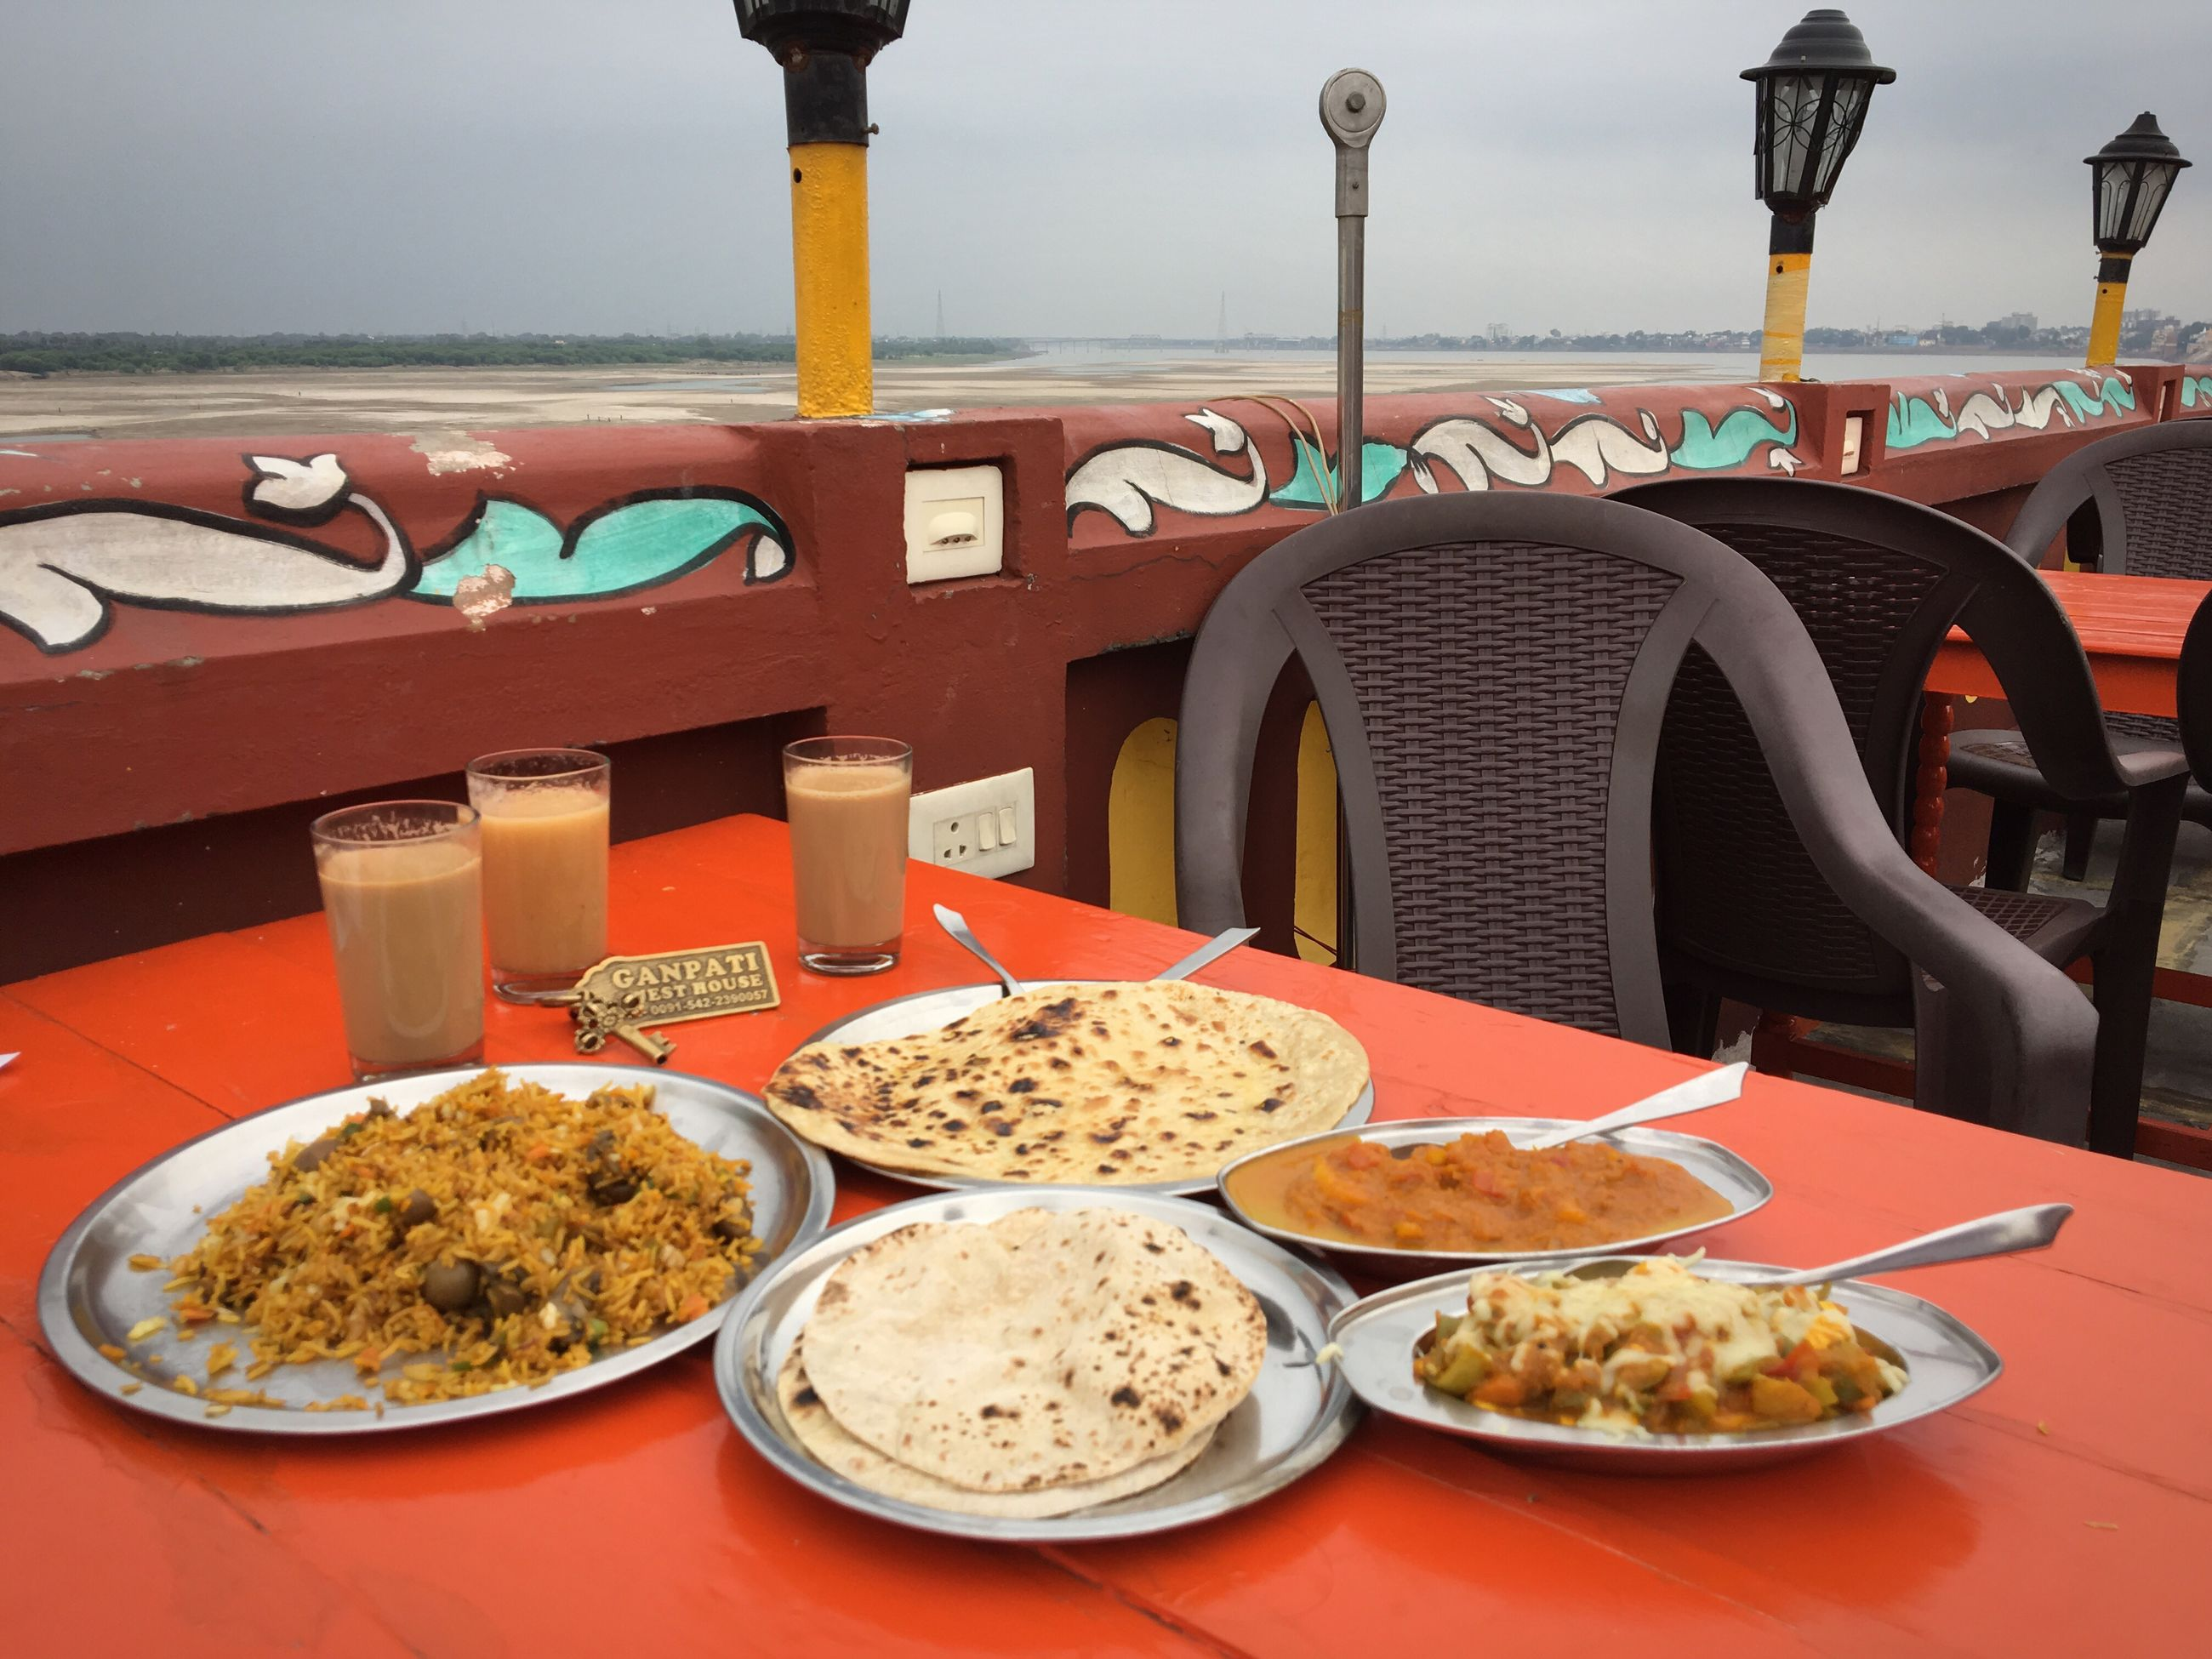 food and drink, food, sea, day, freshness, sky, vacations, ready-to-eat, tourism, no people, city life, tranquil scene